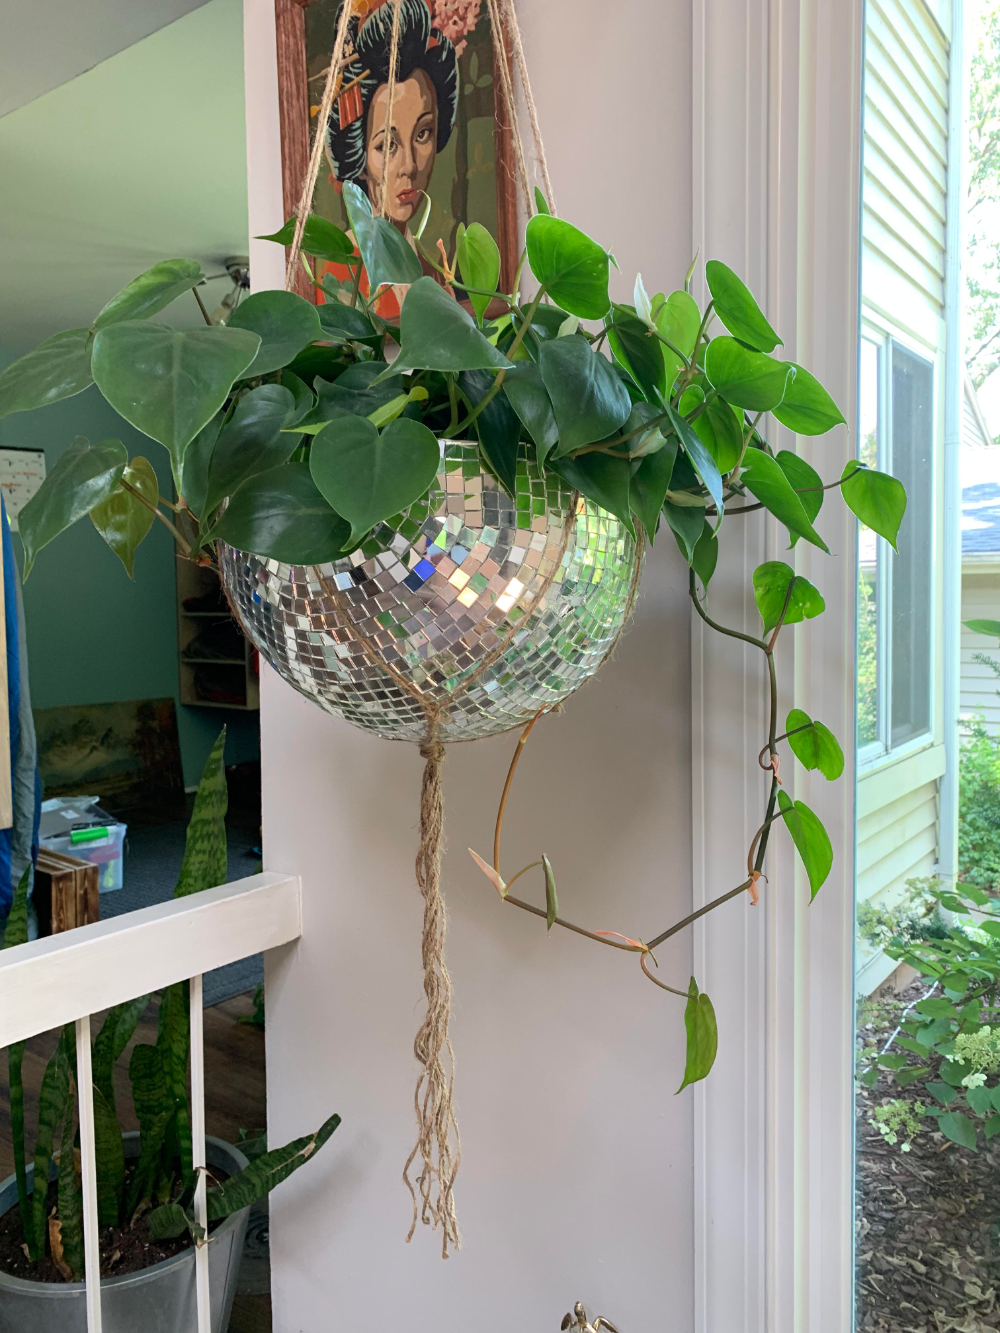 Disco never dies. Heart leaf philodendron from Trader Joe's loving its new hom...#dies #disco #heart #hom #joes #leaf #loving #philodendron #trader